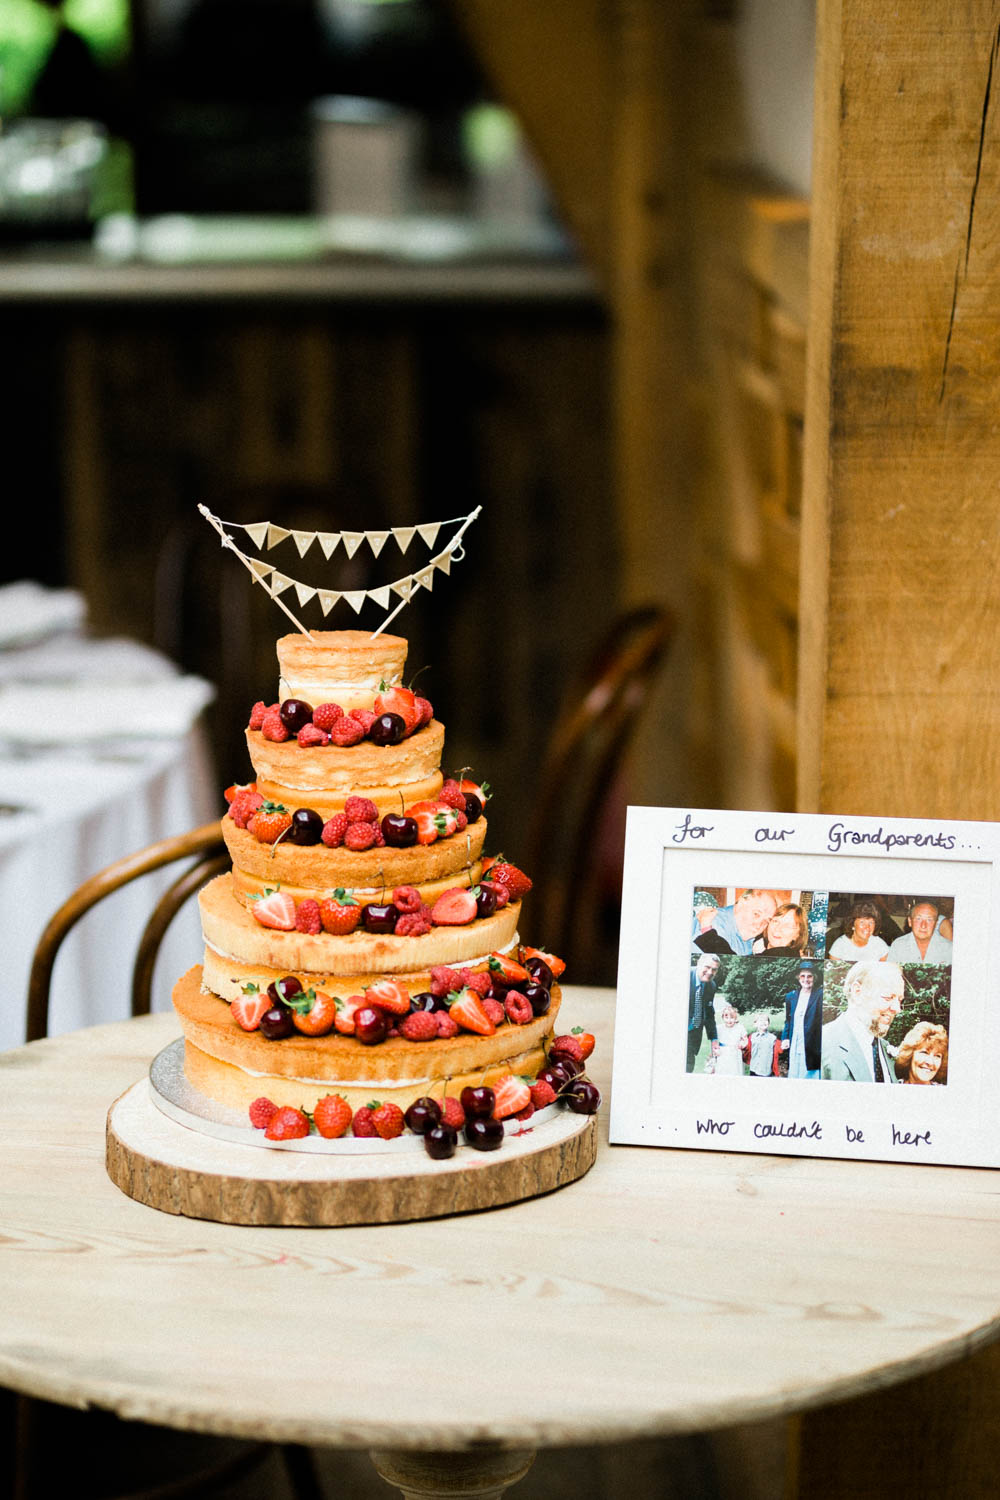 Special-Day-Photography-Cripps-Barn-Cirencester-Gloucester-Barn-Wedding-wedding-cake-with-berries.jpg